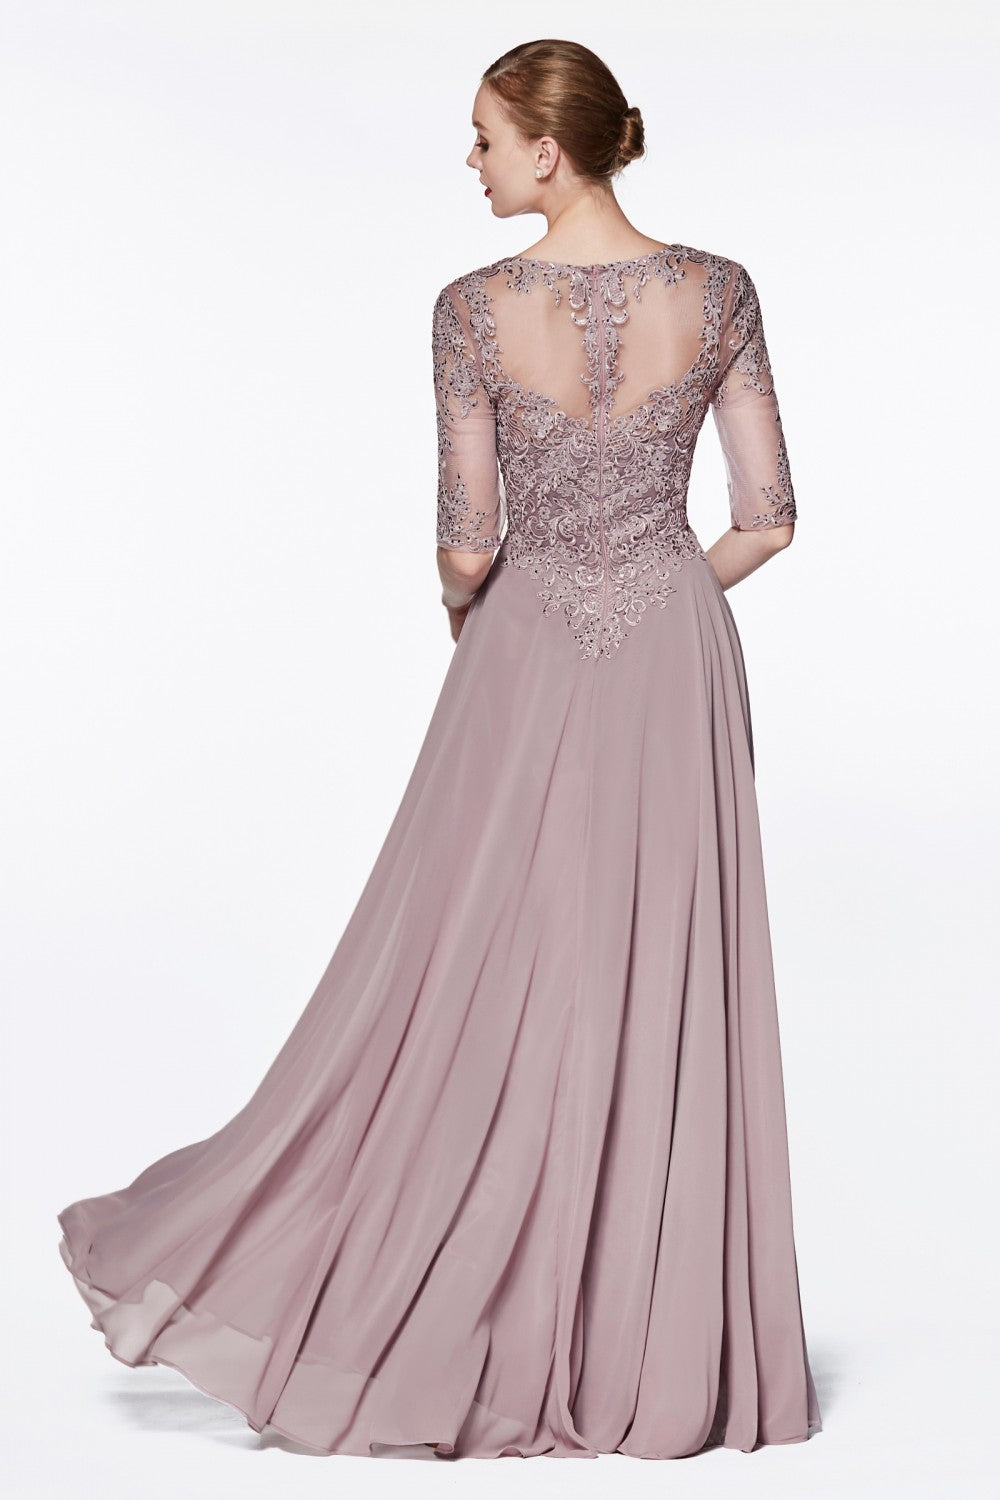 A-Line Chiffon Gown With Half Sleeve And Jeweled Lace Bodice